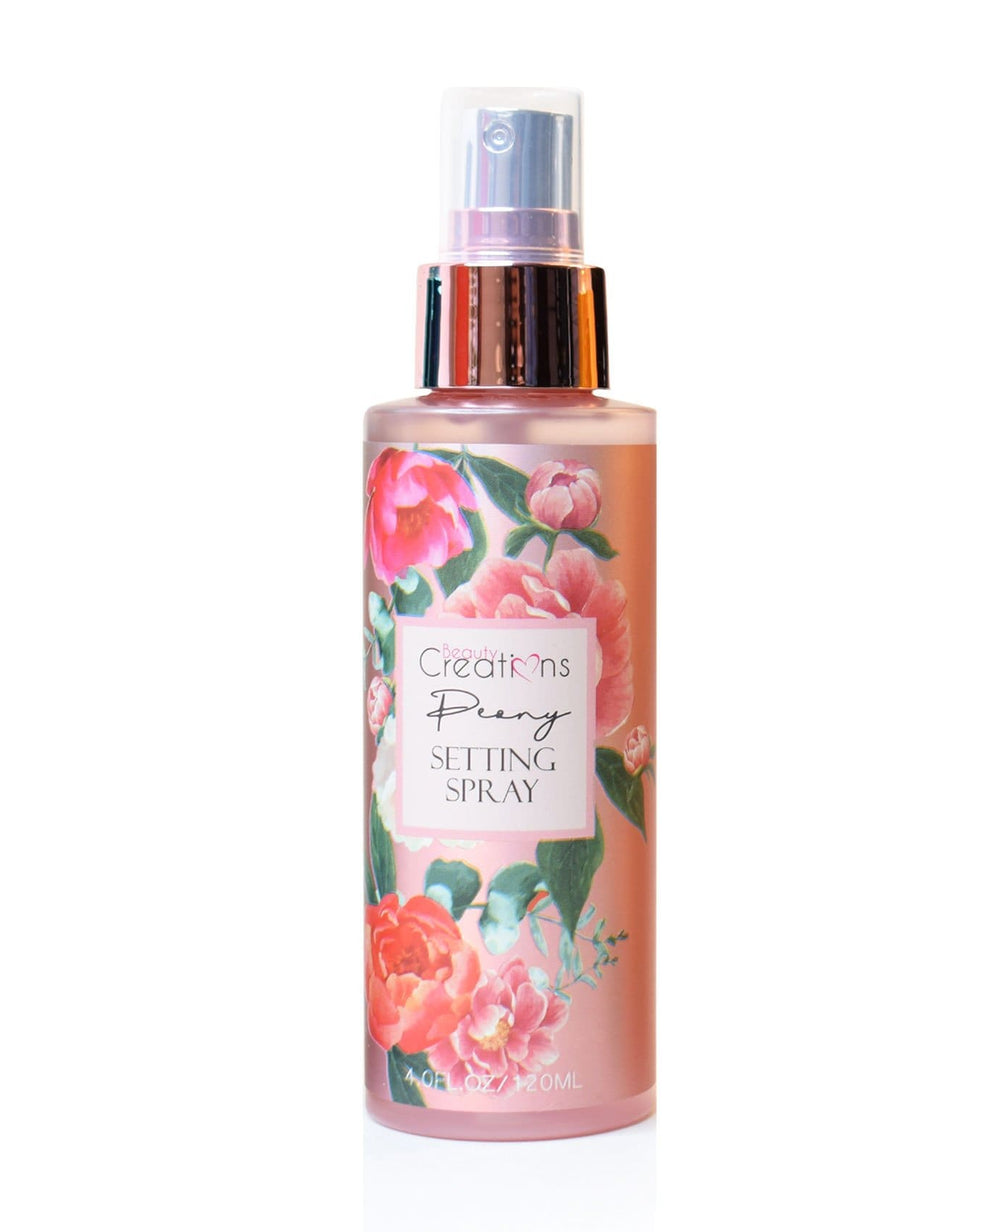 Beauty Creations Peony Setting Spray